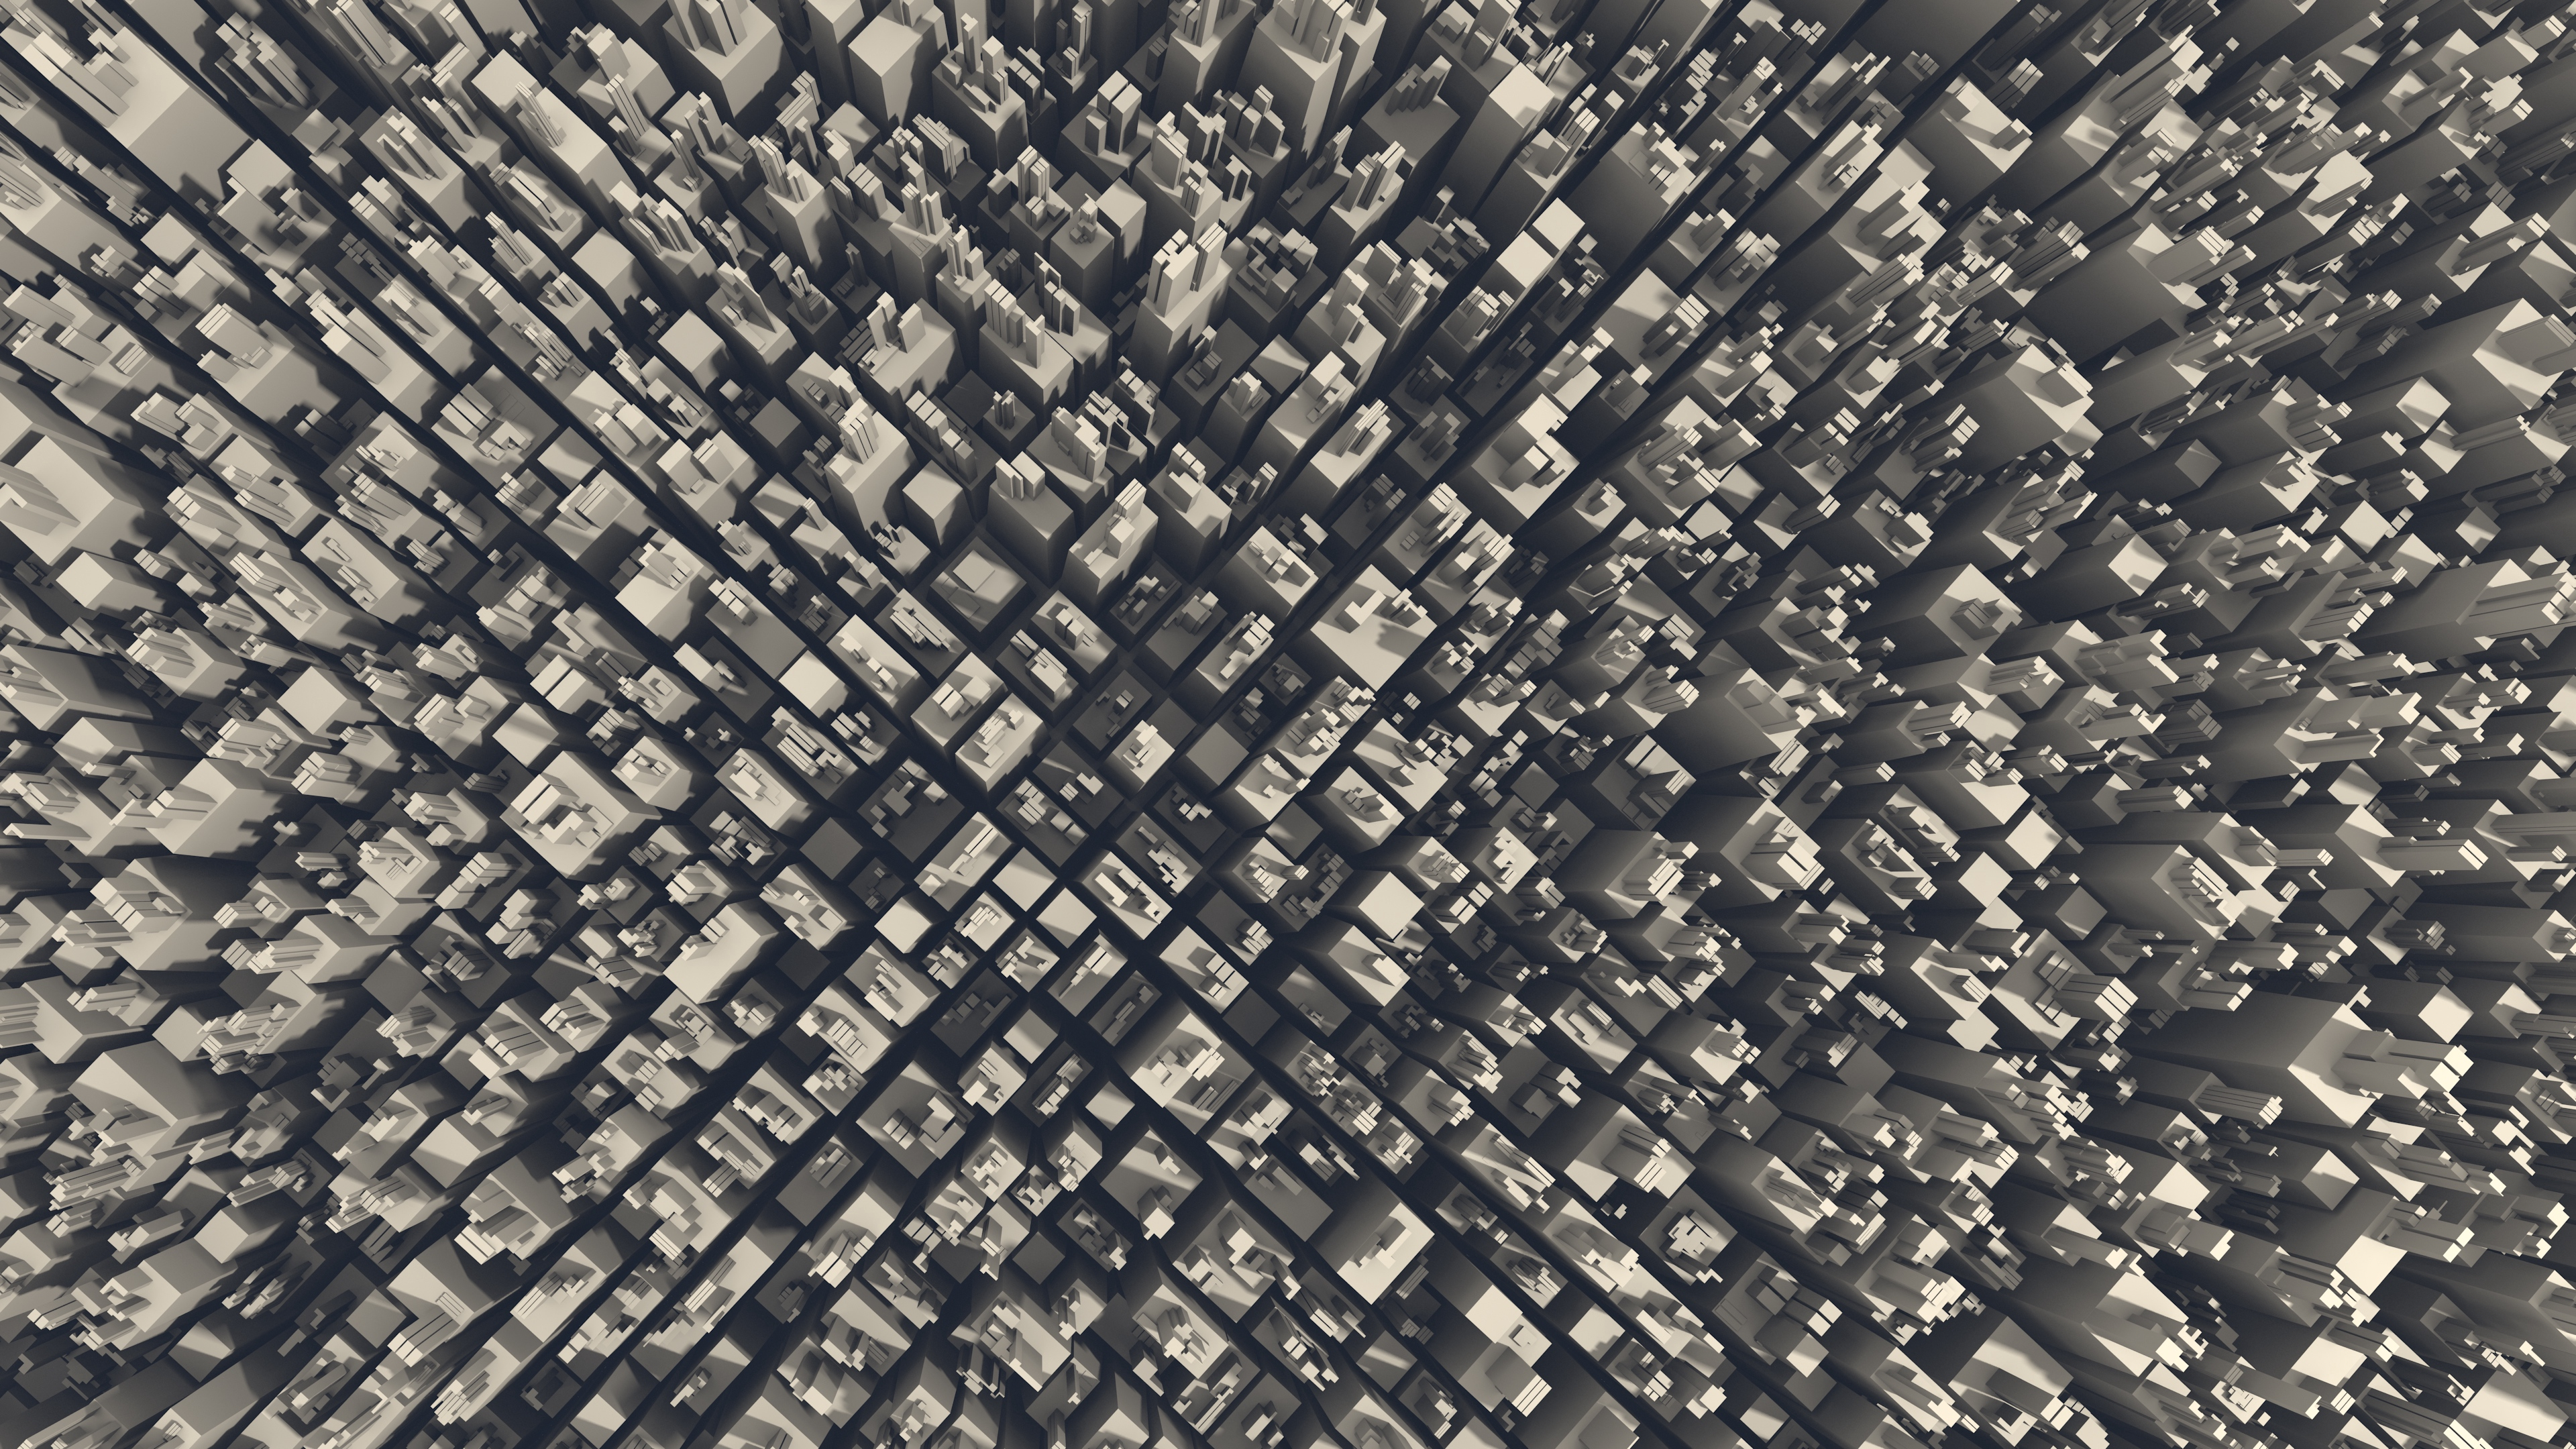 General 3840x2160 top view city 3D Abstract